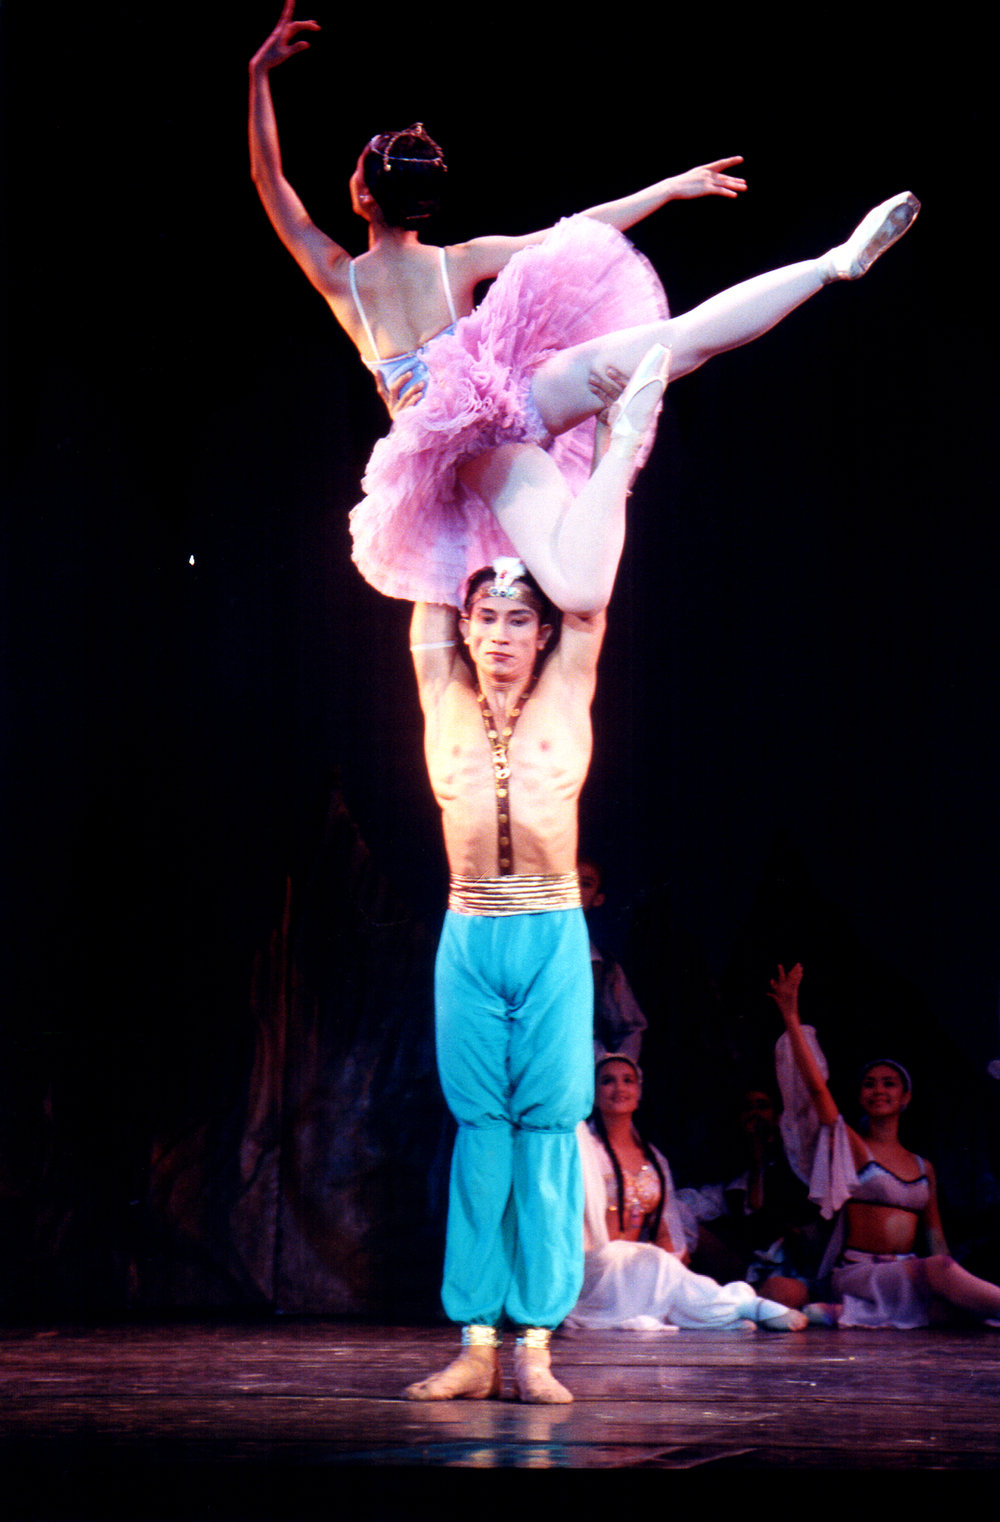 Eduardo Espejo essayed the role of Ali in Ballet Manila's staging of  Le Corsaire  in 2000. In this scene, he is seen lifting Medora up high. Photo by Ocs Alvarez